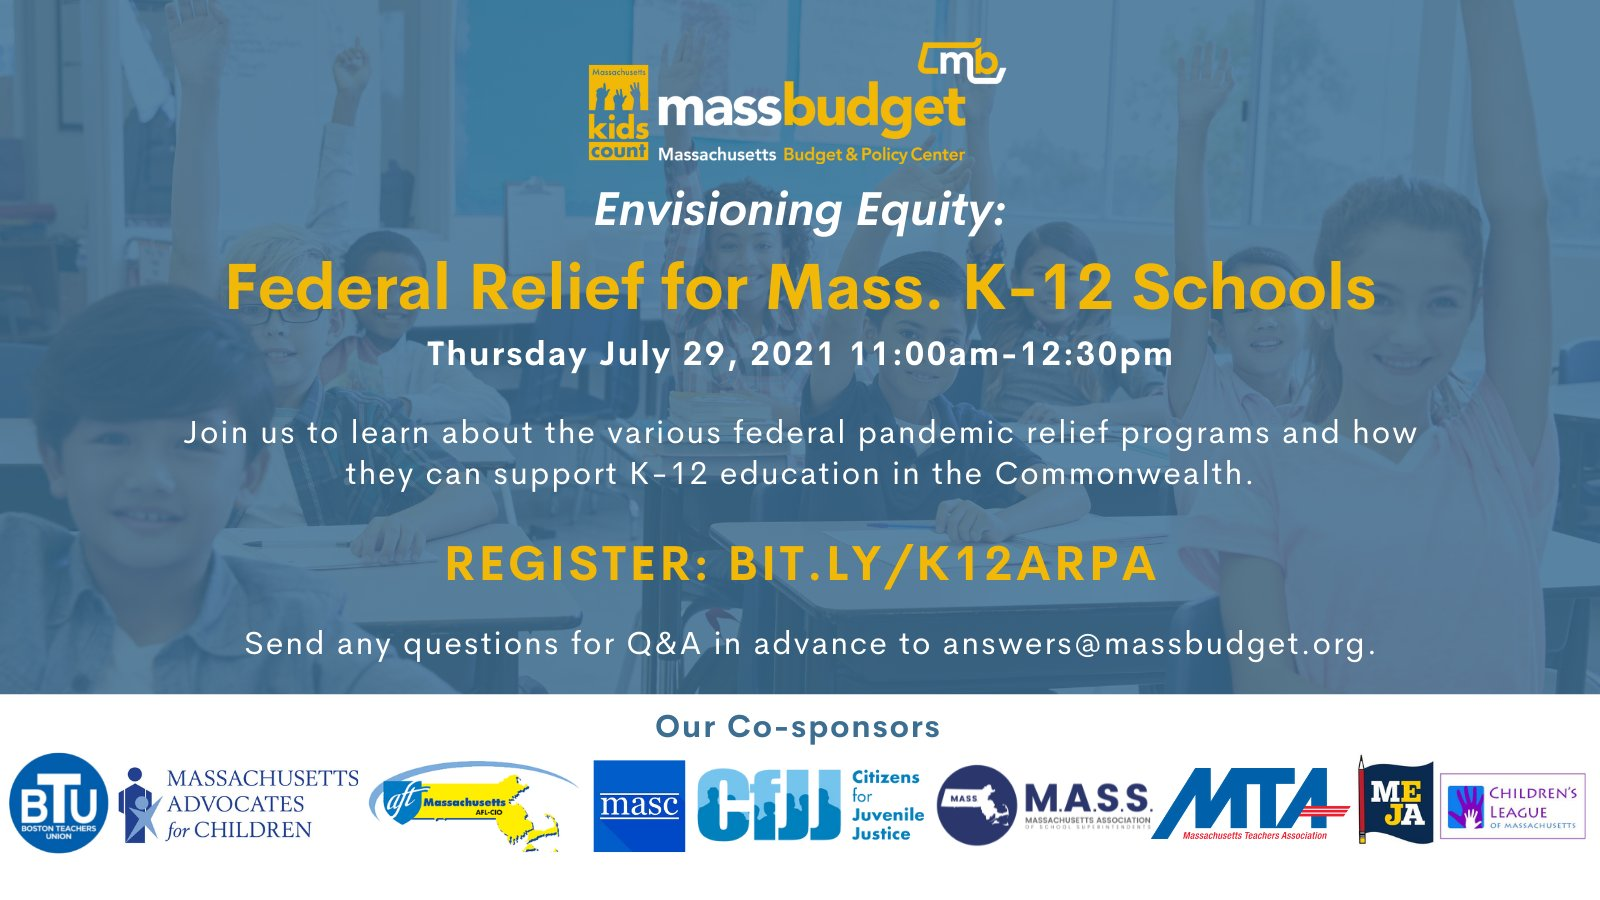 """MassBudget: """"Envisioning Equity: Federal Relief for Mass. K-12 Schools"""" - July 29 (webinar)"""